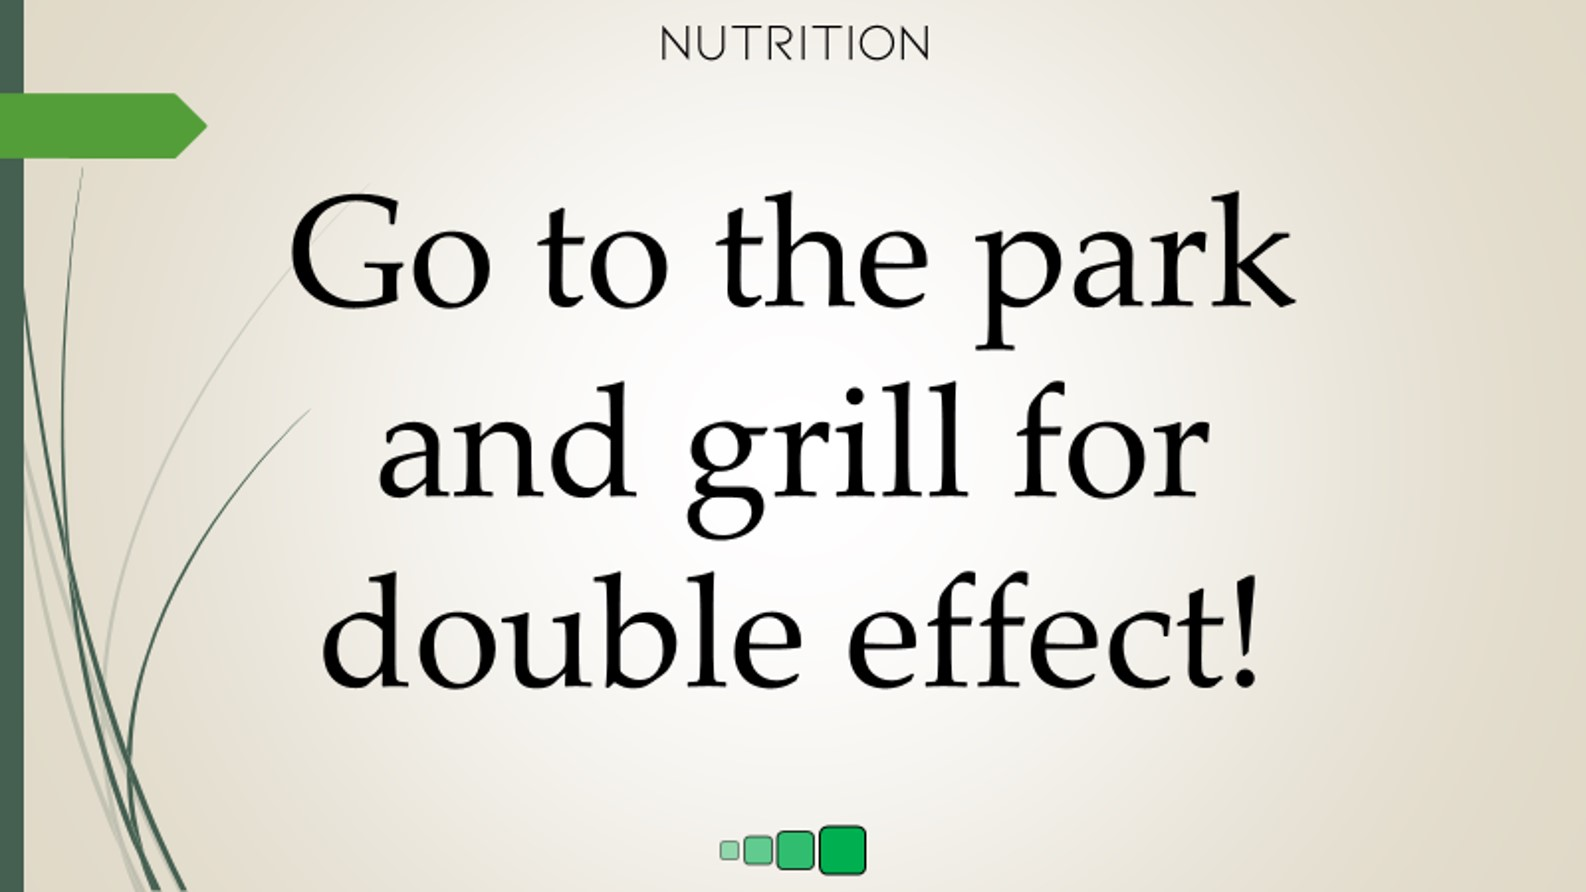 go to the park and grill for double effect!